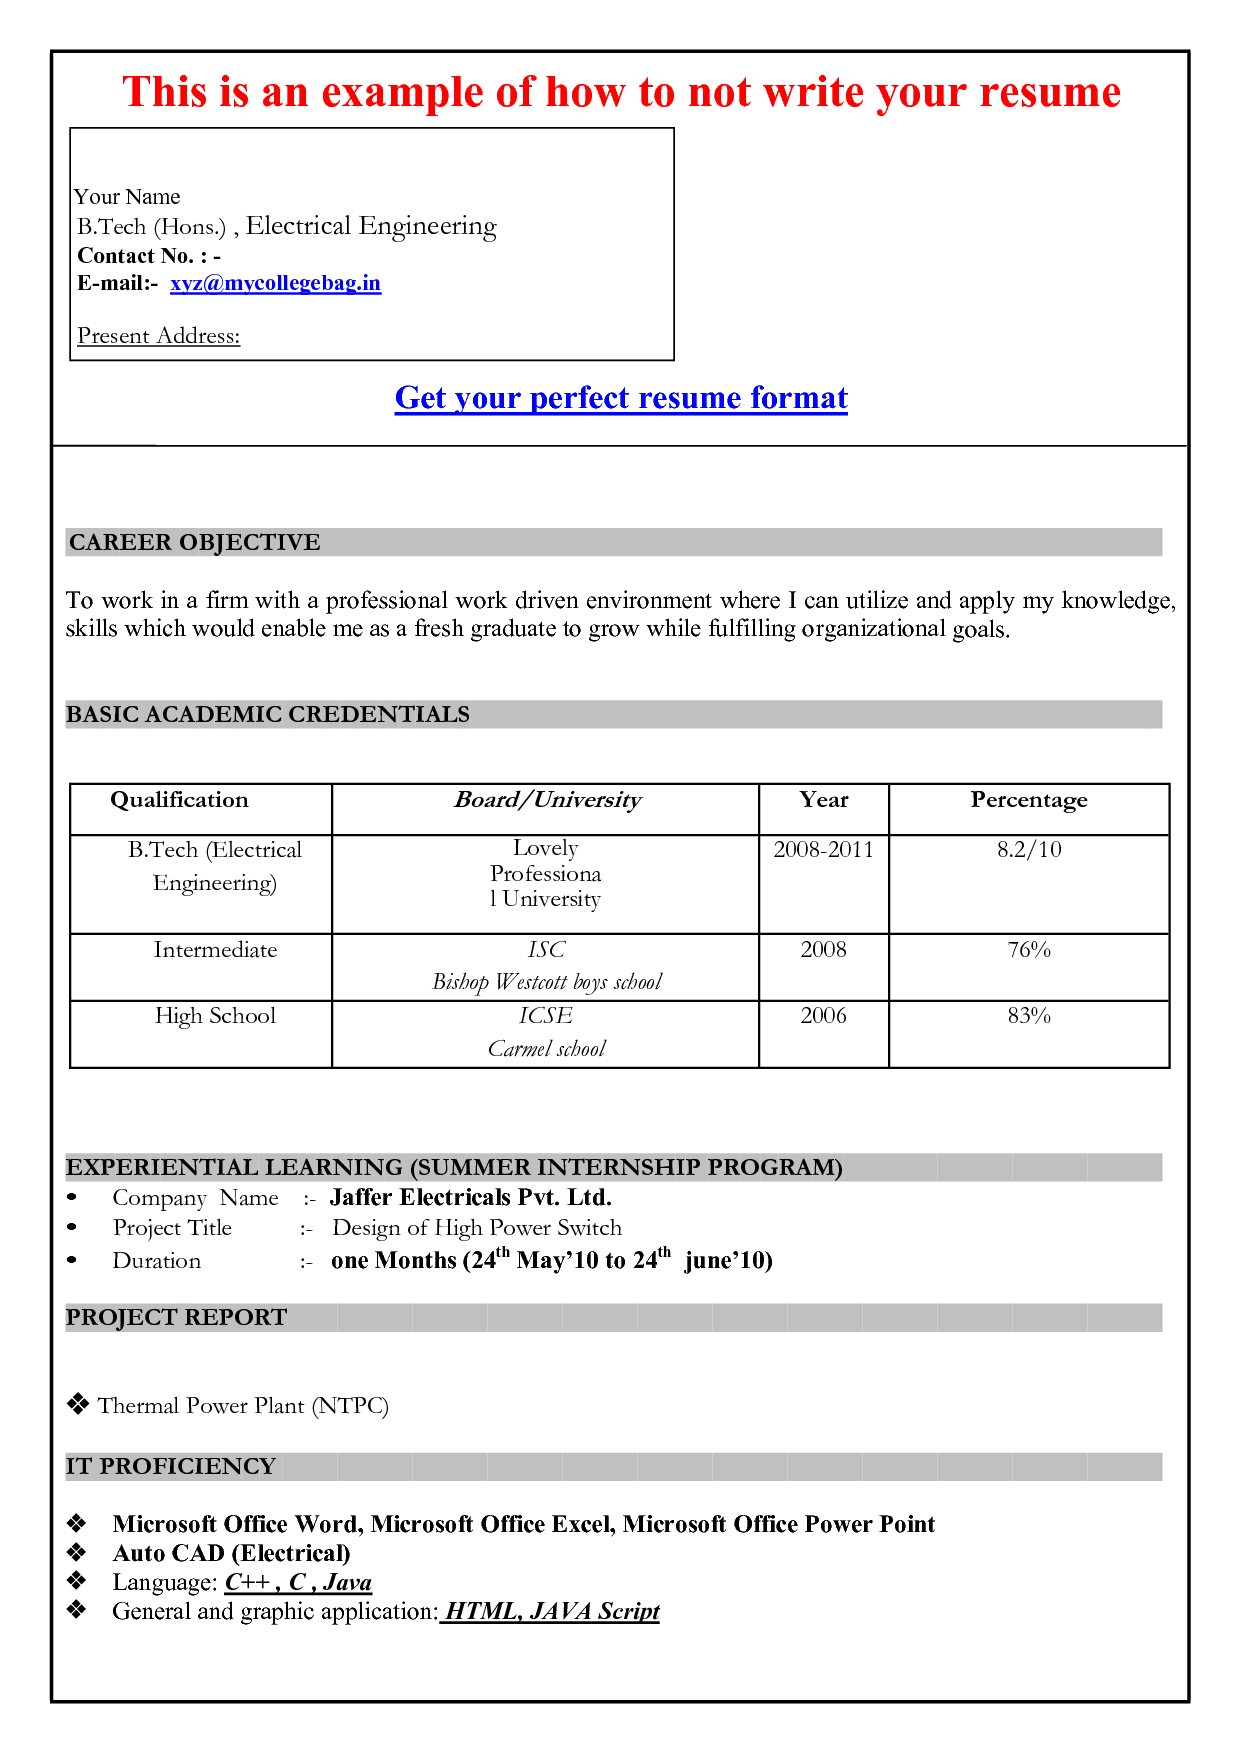 Resume Template For Microsoft Word 2010 Word Template For Resume Templates And Builder Doc Free Document